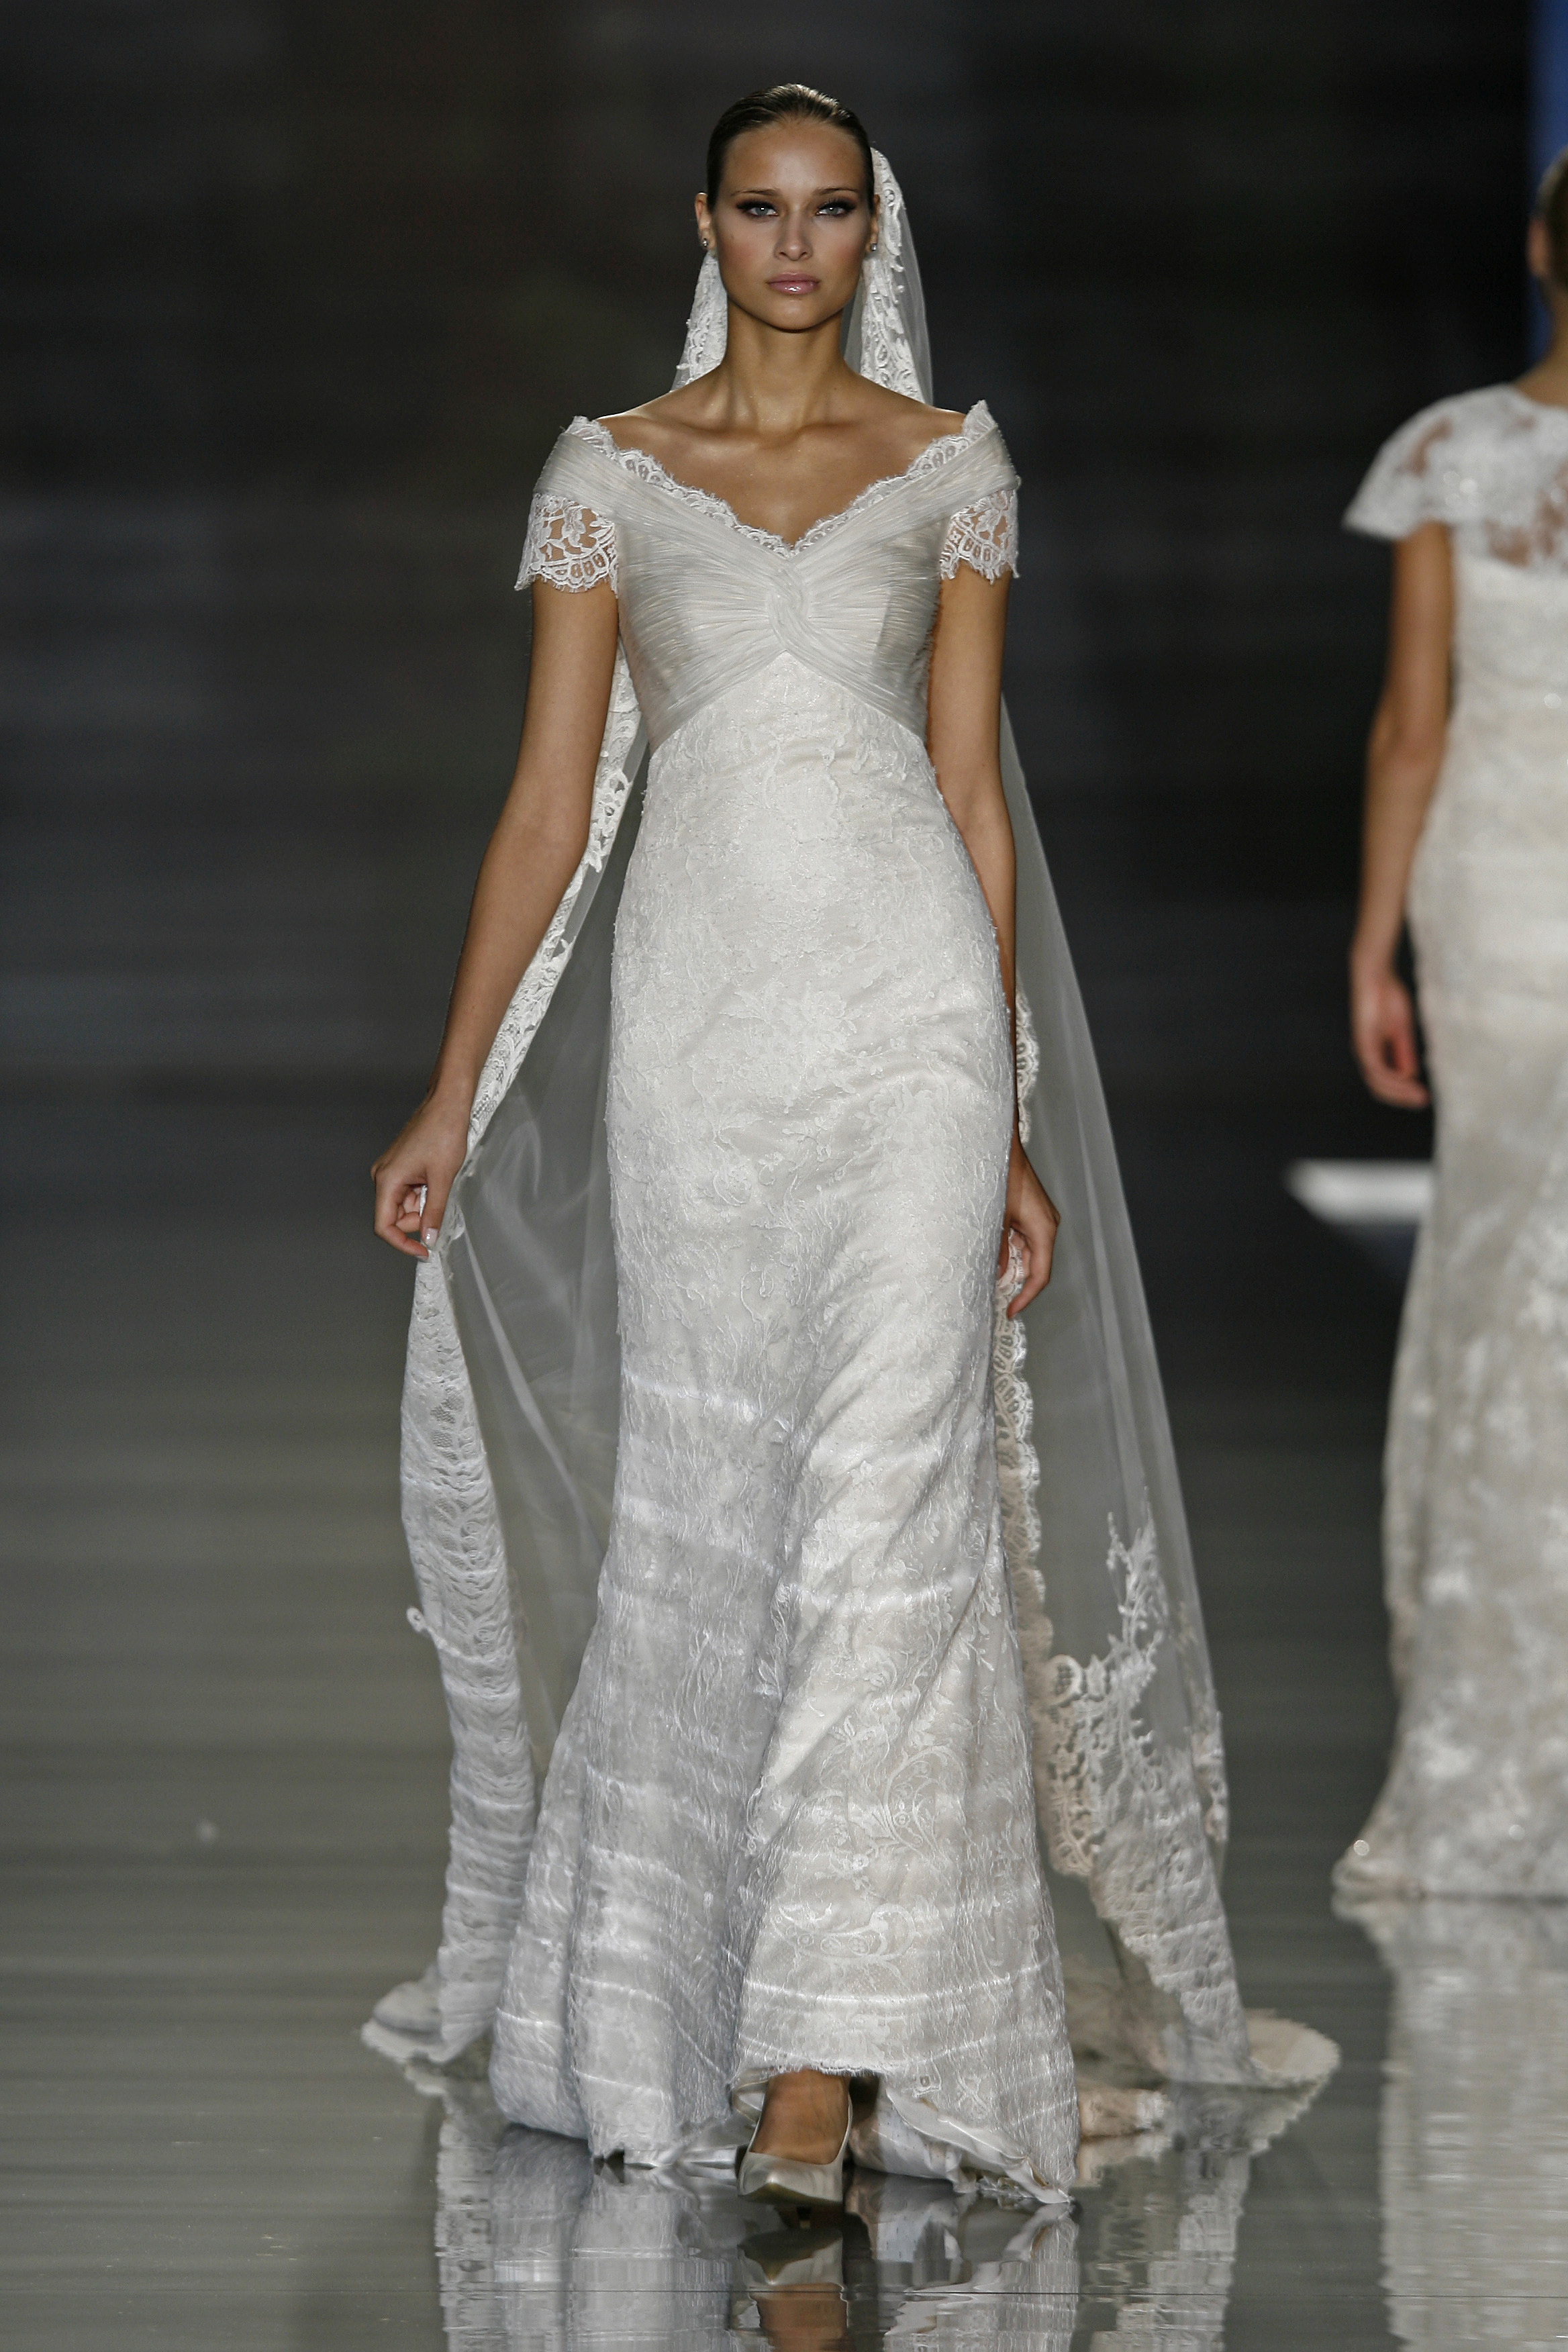 Wedding Dresses, Fashion, dress, Manuel mota